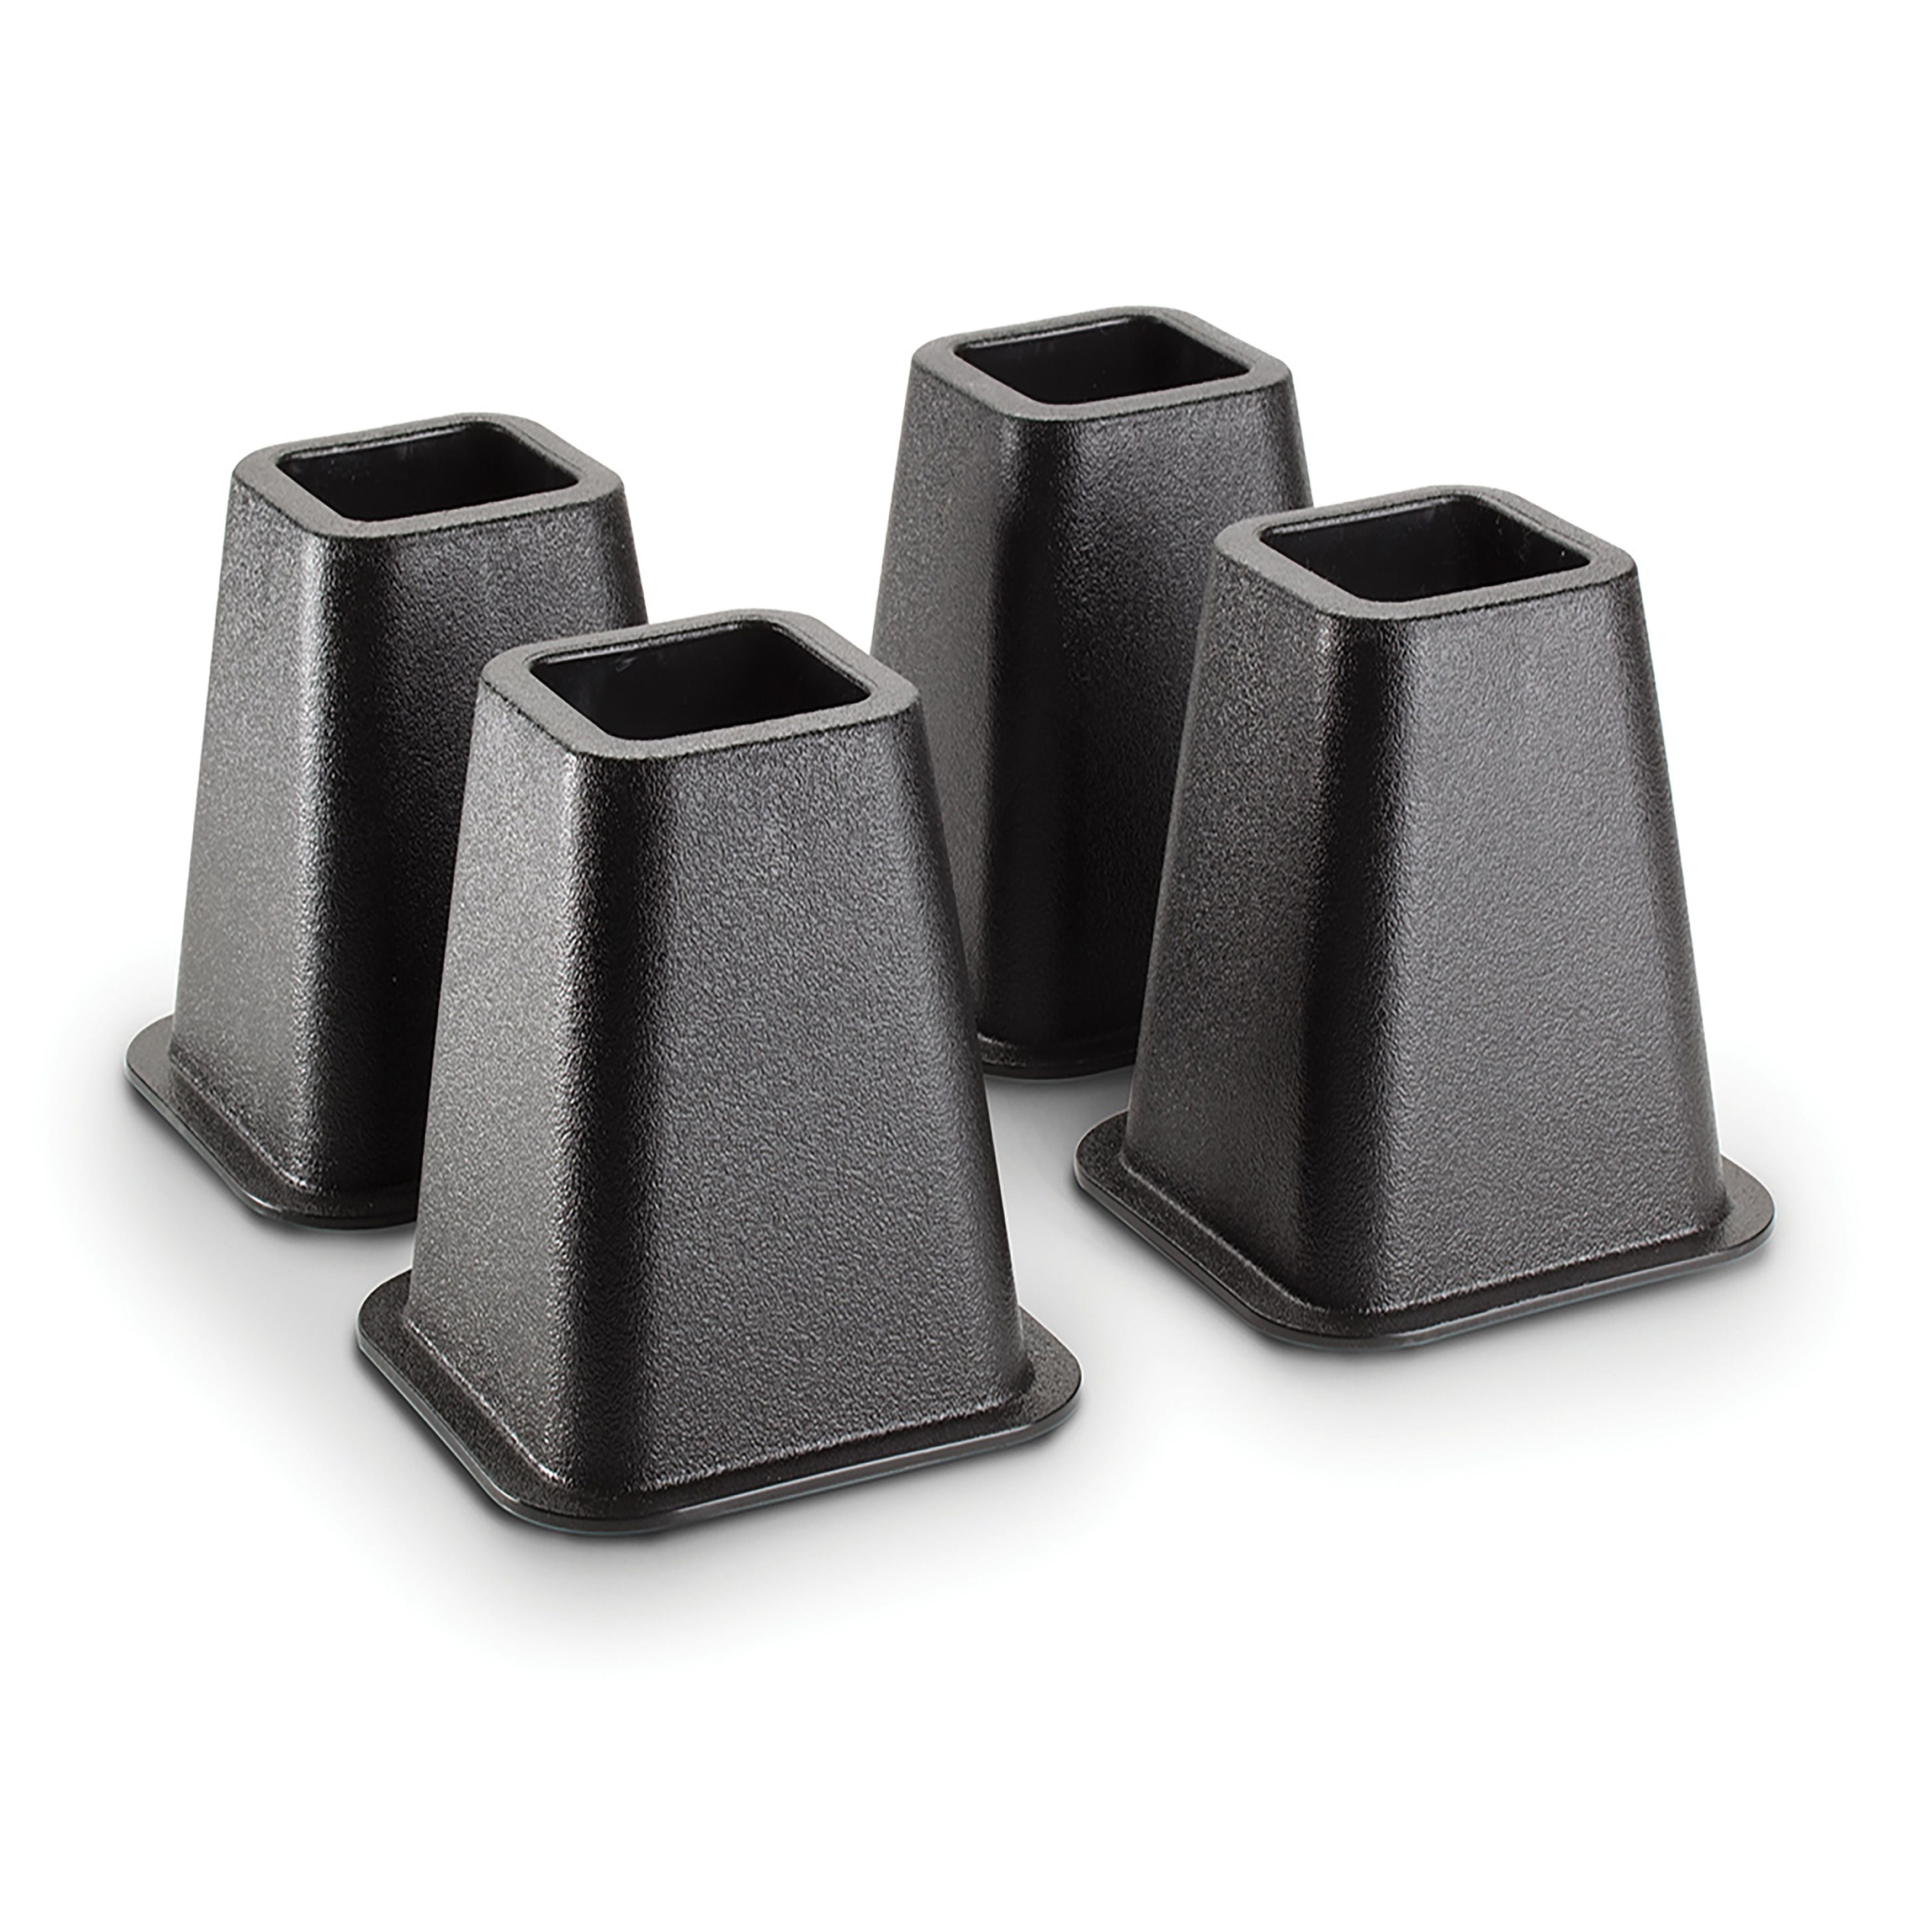 Simplify Kennedy Bed Risers 4 Pack Black 6 Inch